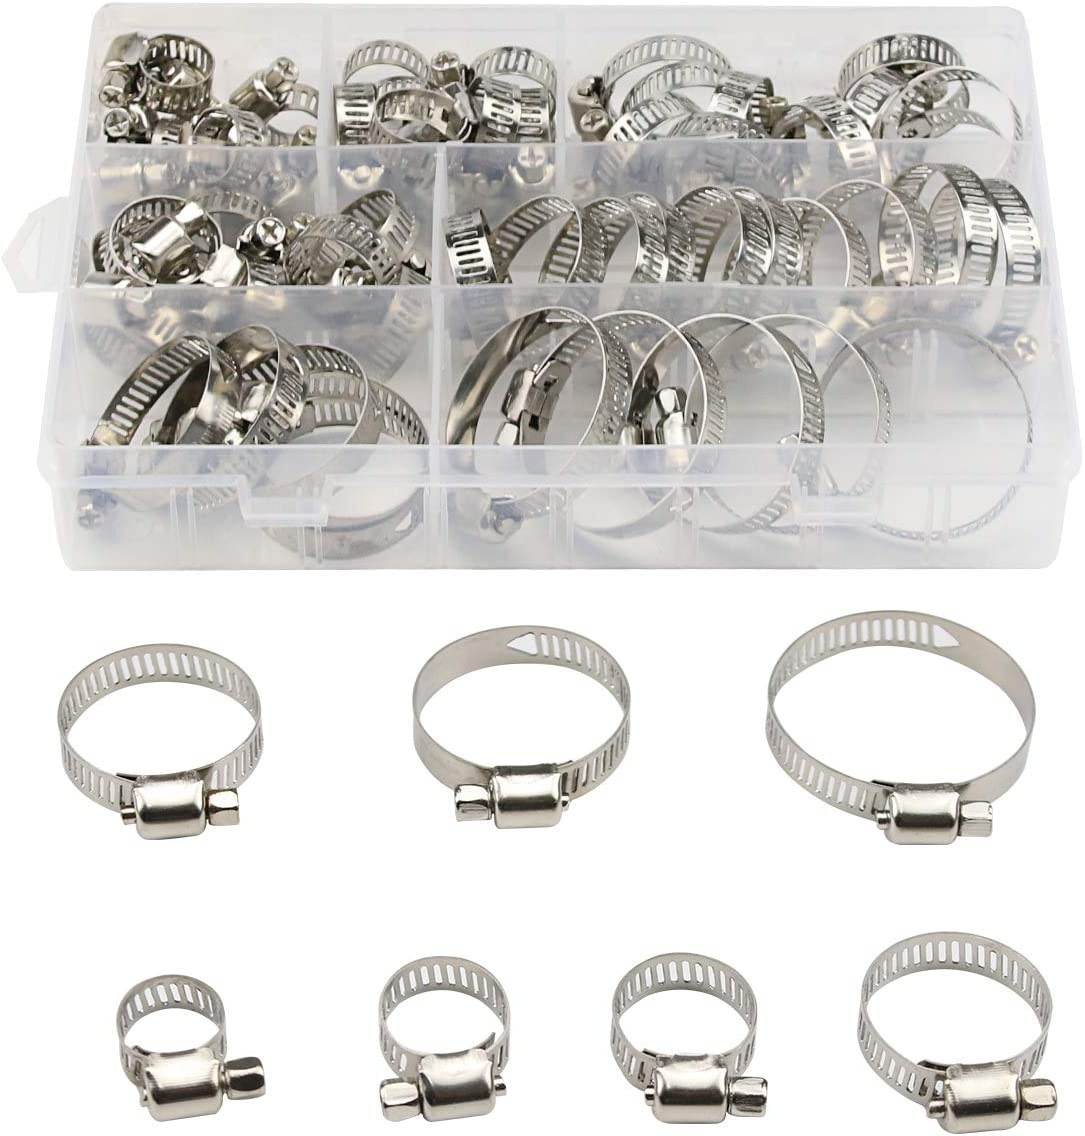 Acescen Hose Clamp 60PCS Stainless Steel Adjustable 6-38mm Worm Gear Hose Clamps Assortment Kit Fuel Line Clamp for Plumbing, Automotive and Mechanical Applications A07